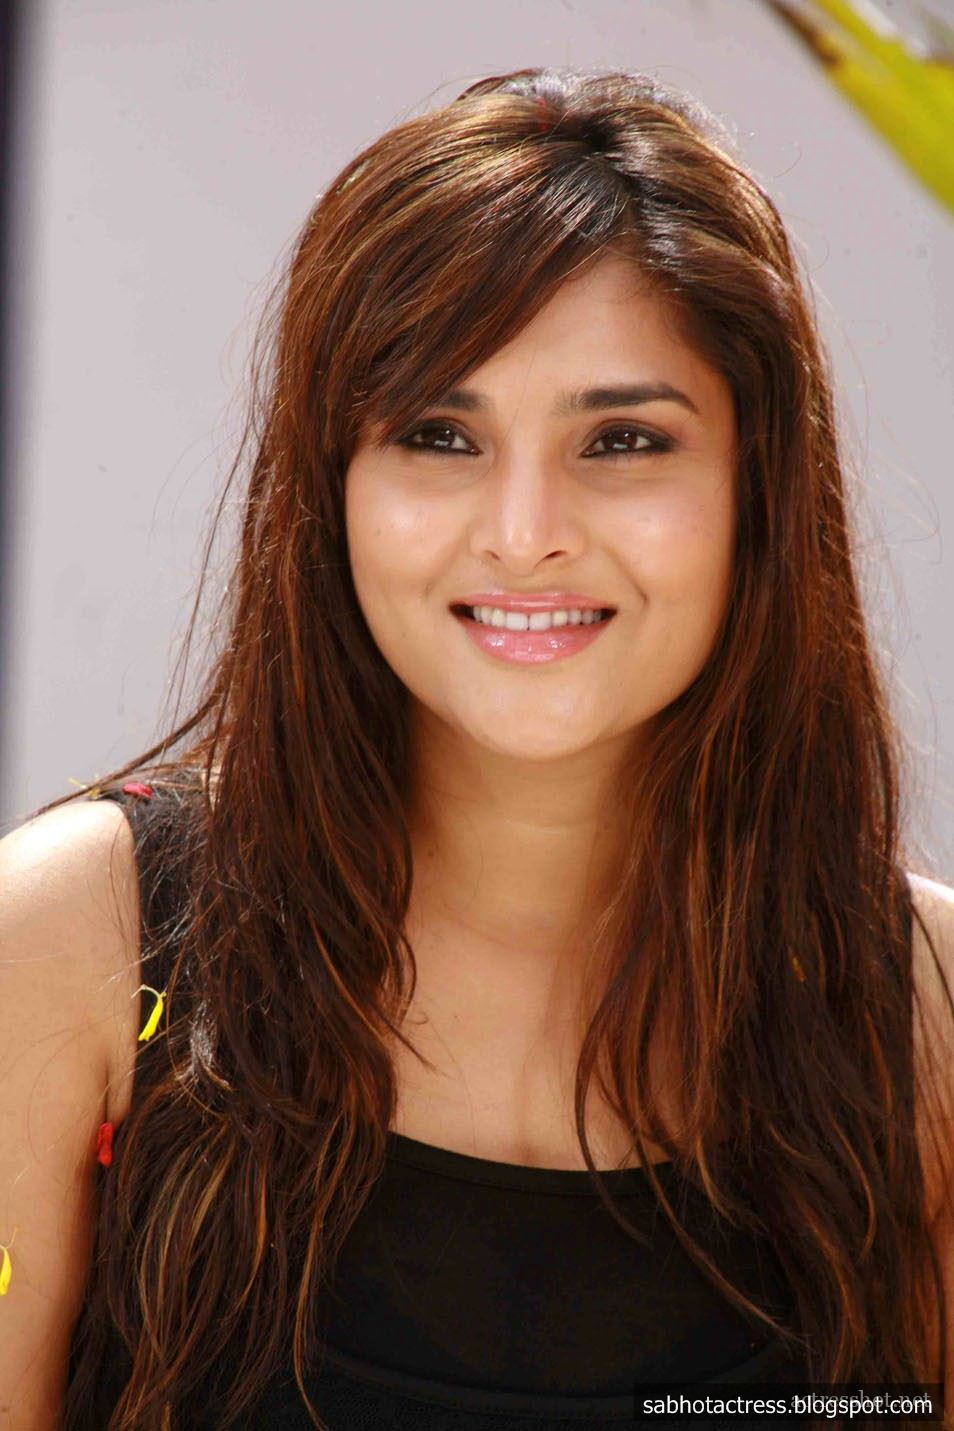 Indian Actress Wallpapers - Page 2 - HD Wallpapers